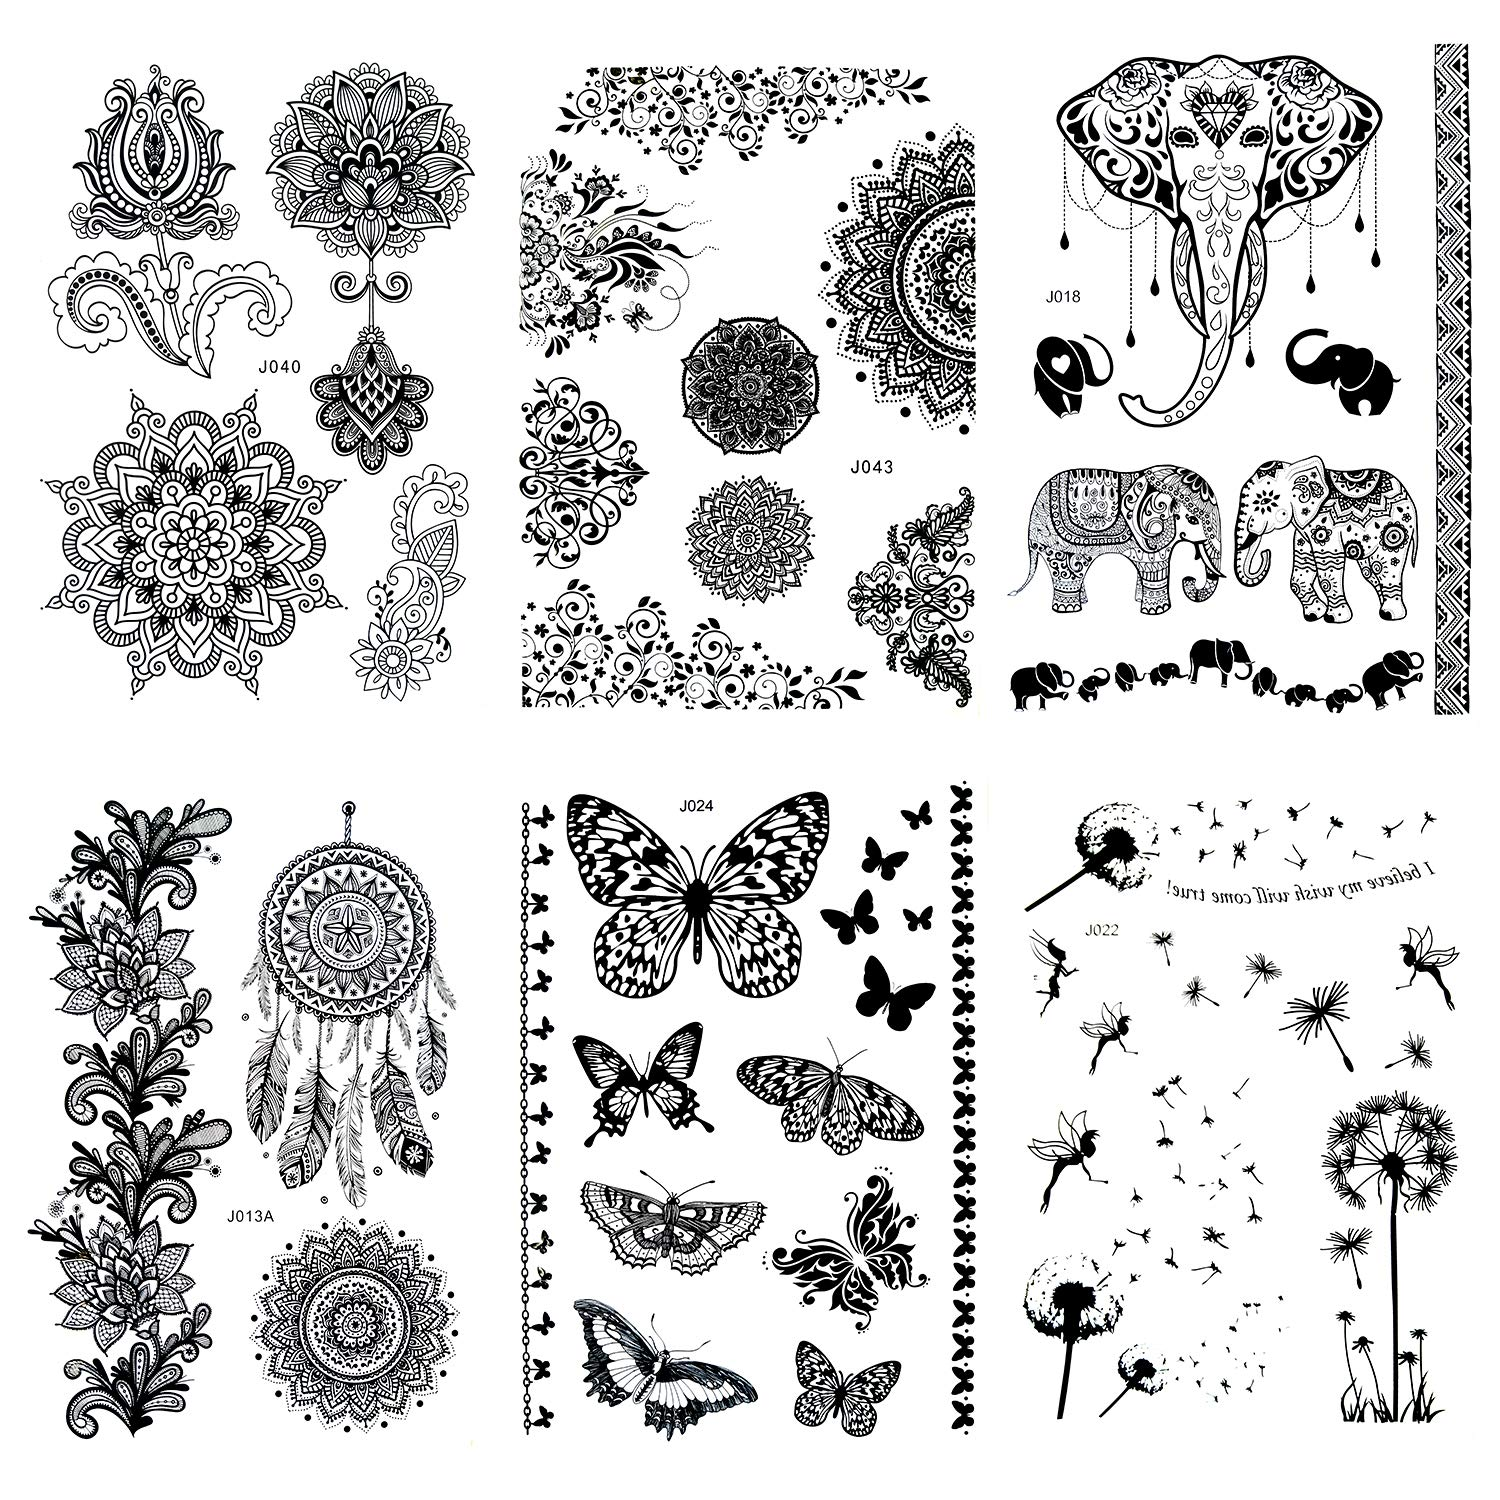 Pinkiou Women Tattoo Stickers Black Lace Mehndi Stickers Temporary Tattoos Fashion Body Art (Pack of 6)